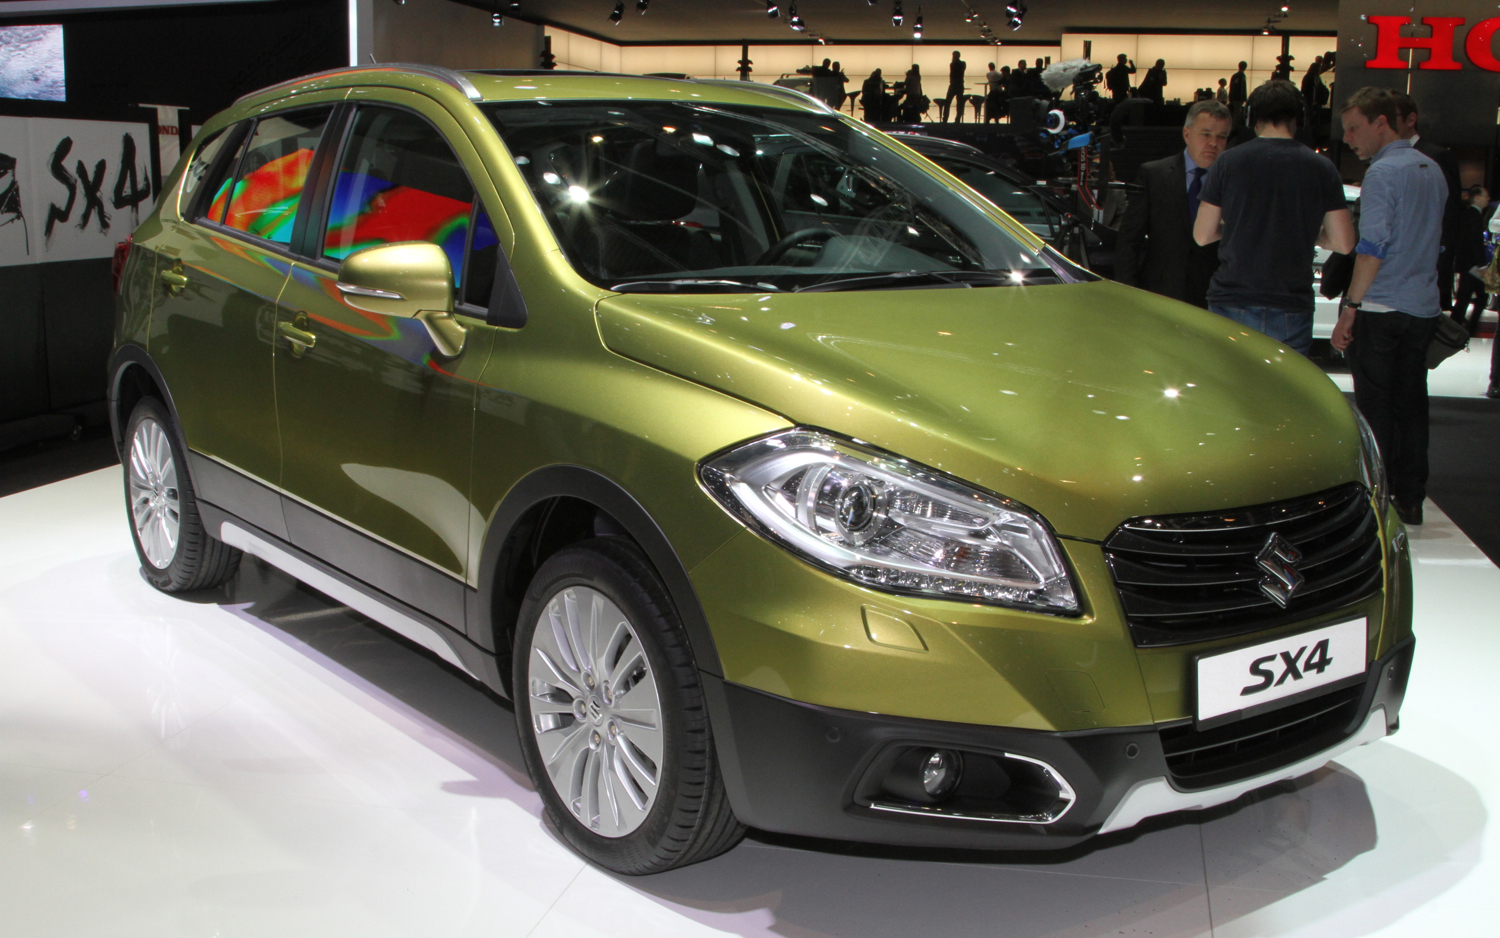 Suzuki SX4 Crossover Debuts in Geneva With First-Ever Double-Sliding